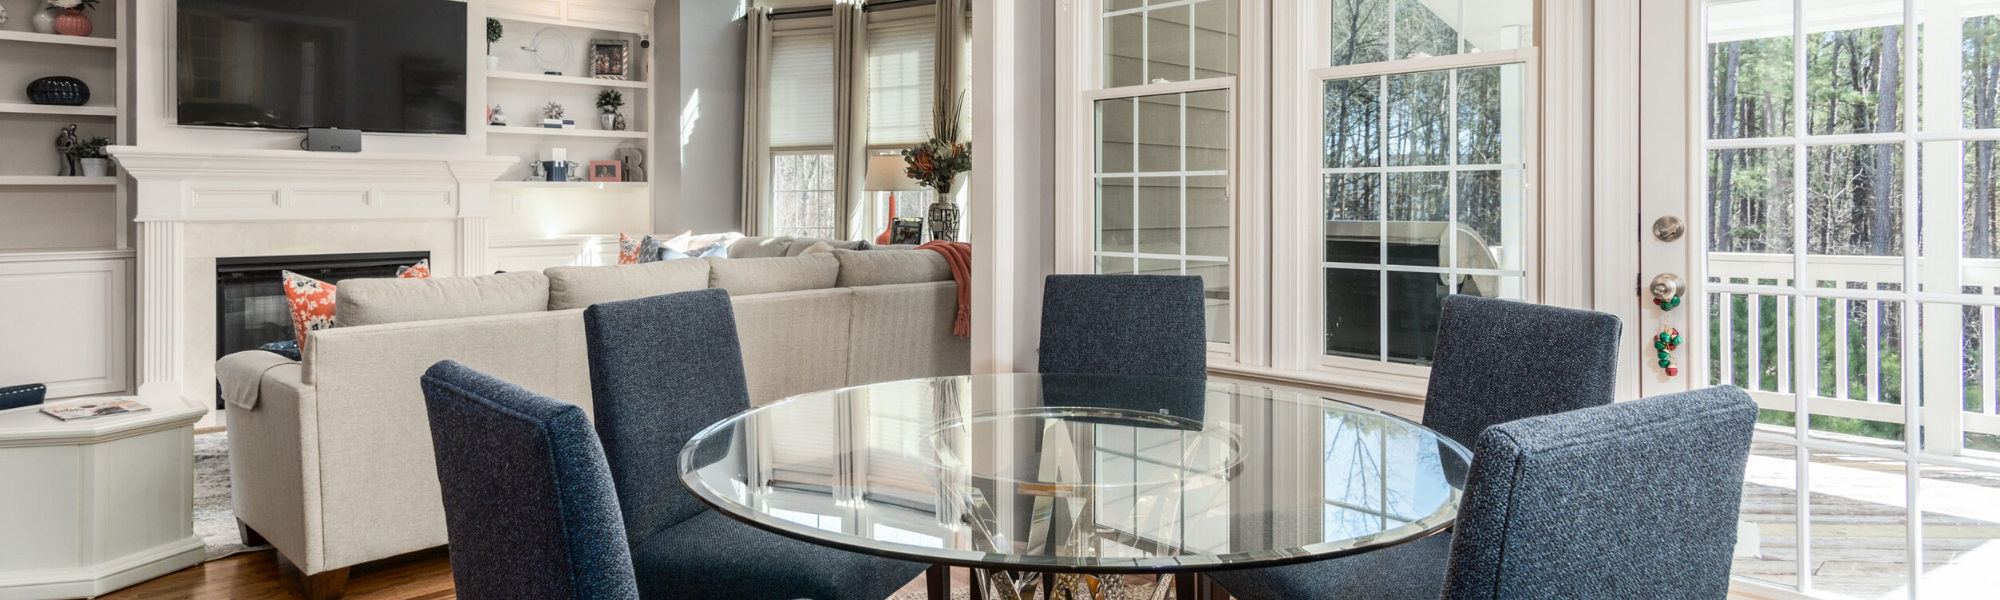 Information for buyers header image showing a nicely staged living and dining room.